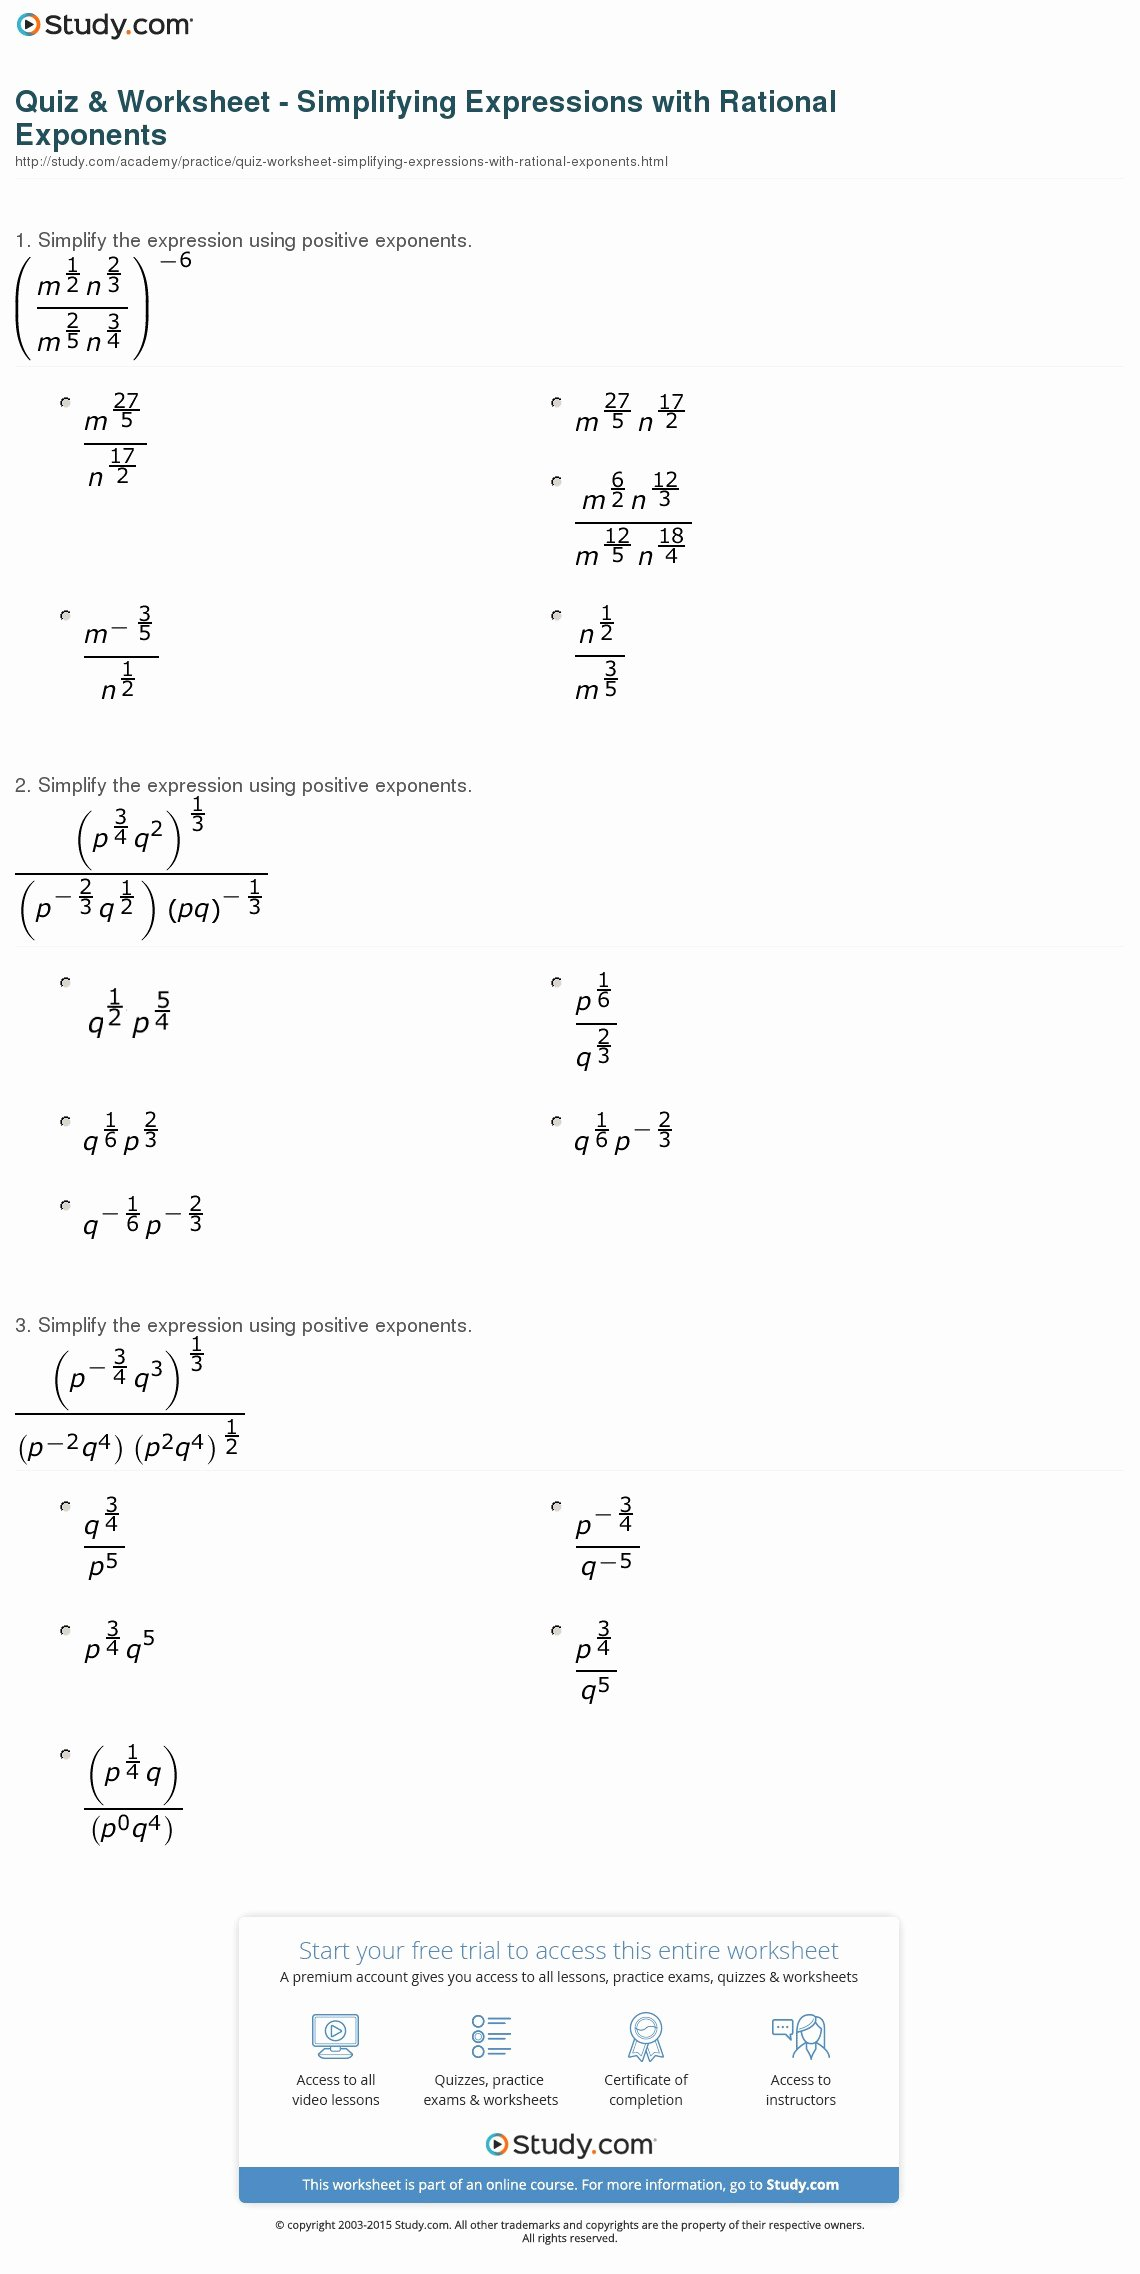 Simplifying Rational Expressions Worksheet Lovely Quiz & Worksheet Simplifying Expressions with Rational